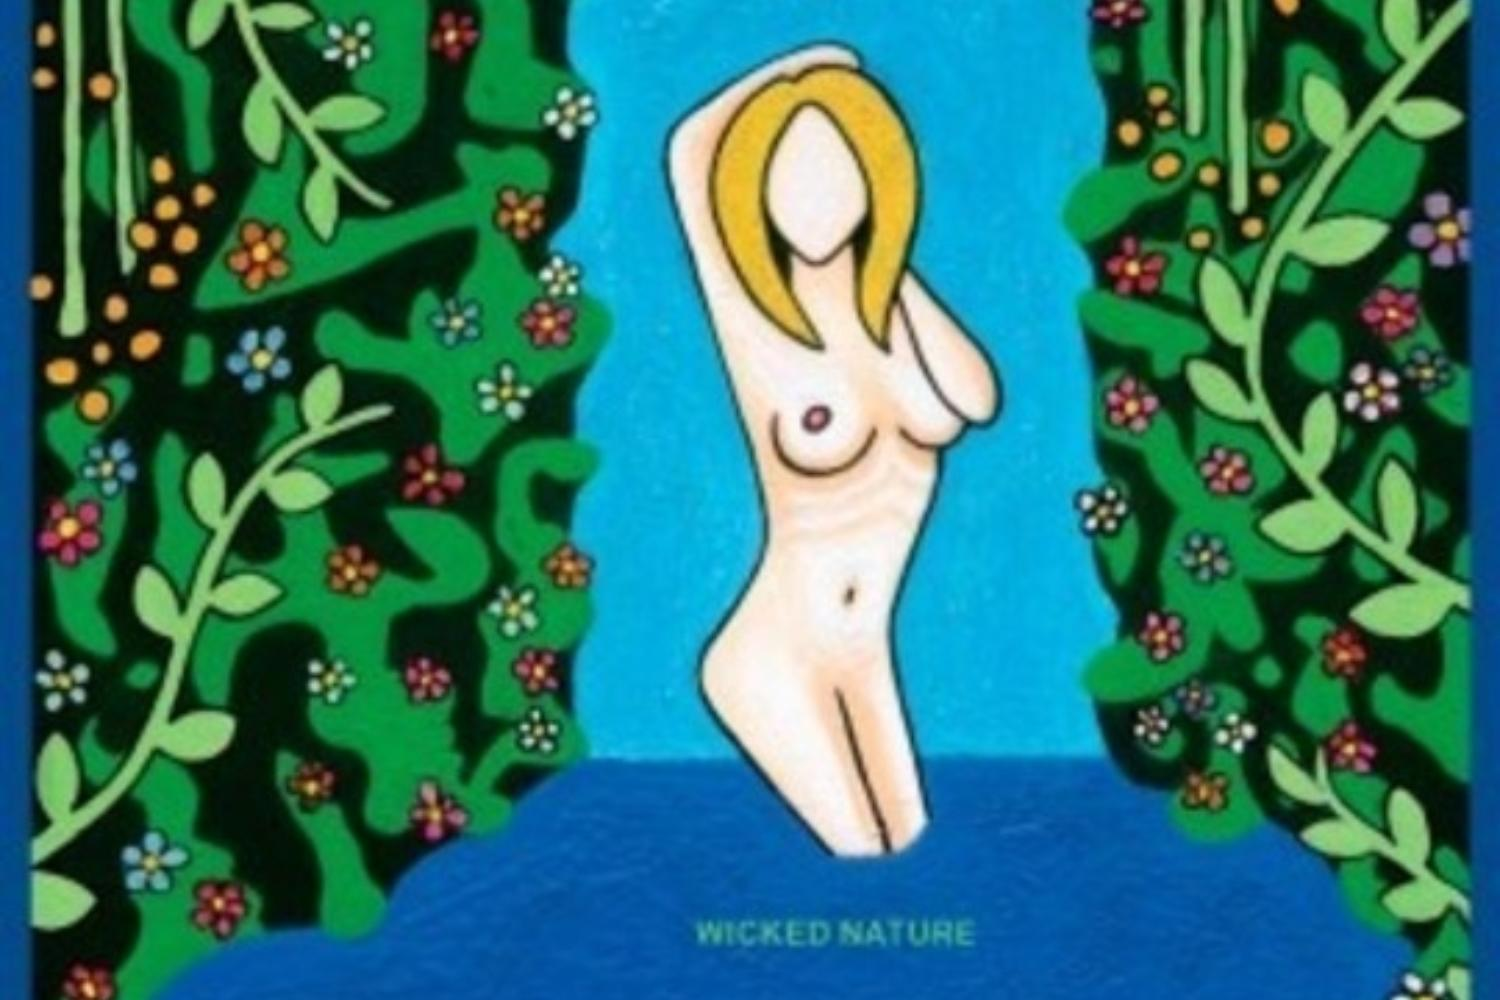 The Vines - Wicked Nature